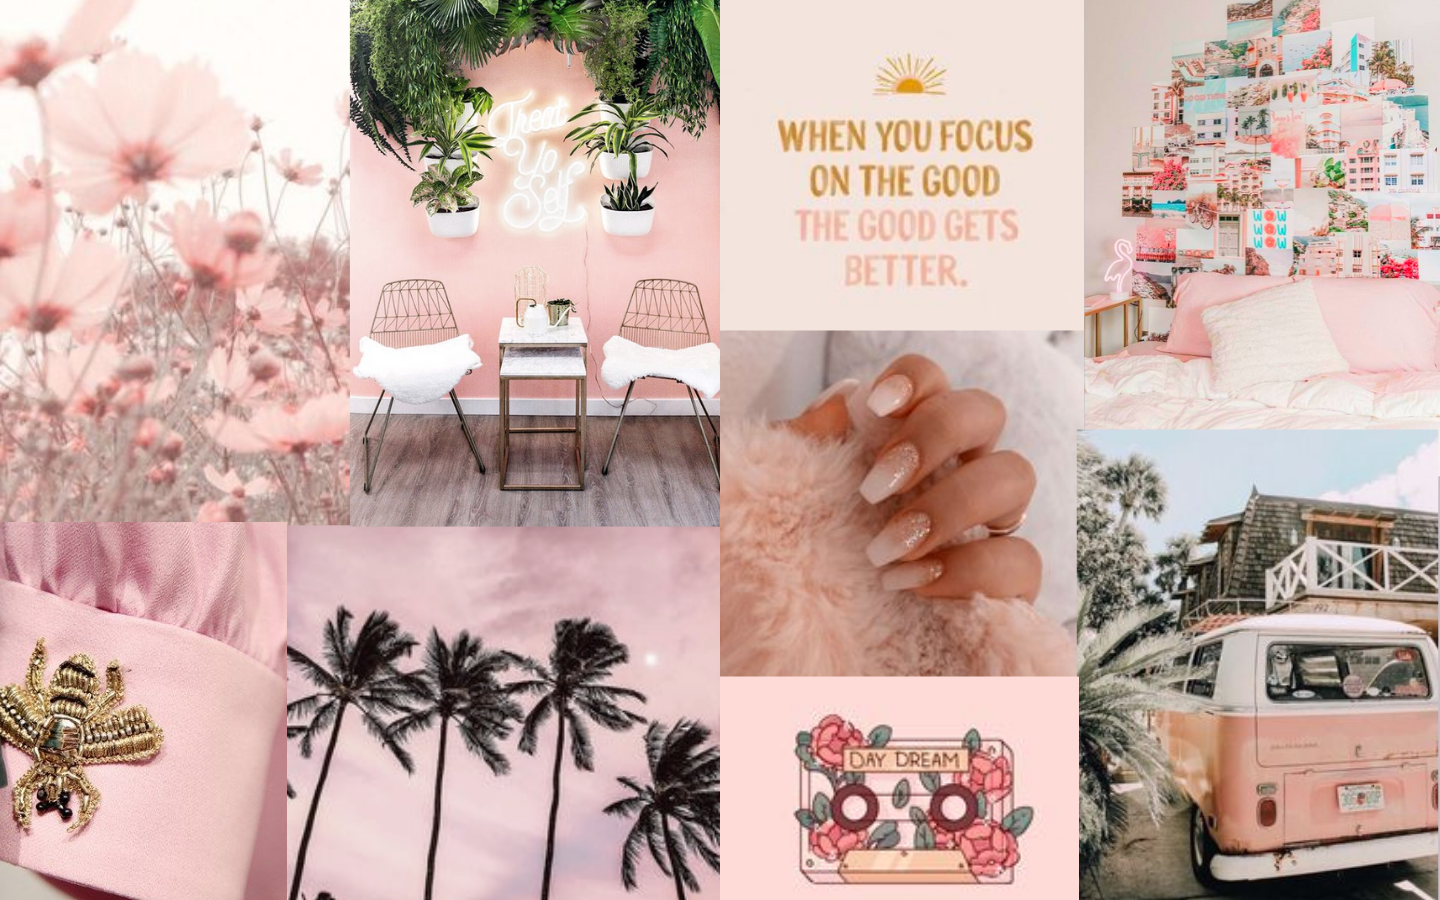 Pink Aesthetic Macbook Wallpaper In 2020 Macbook Wallpaper Macbook Air Wallpaper Laptop Wallpaper Desktop Wallpapers